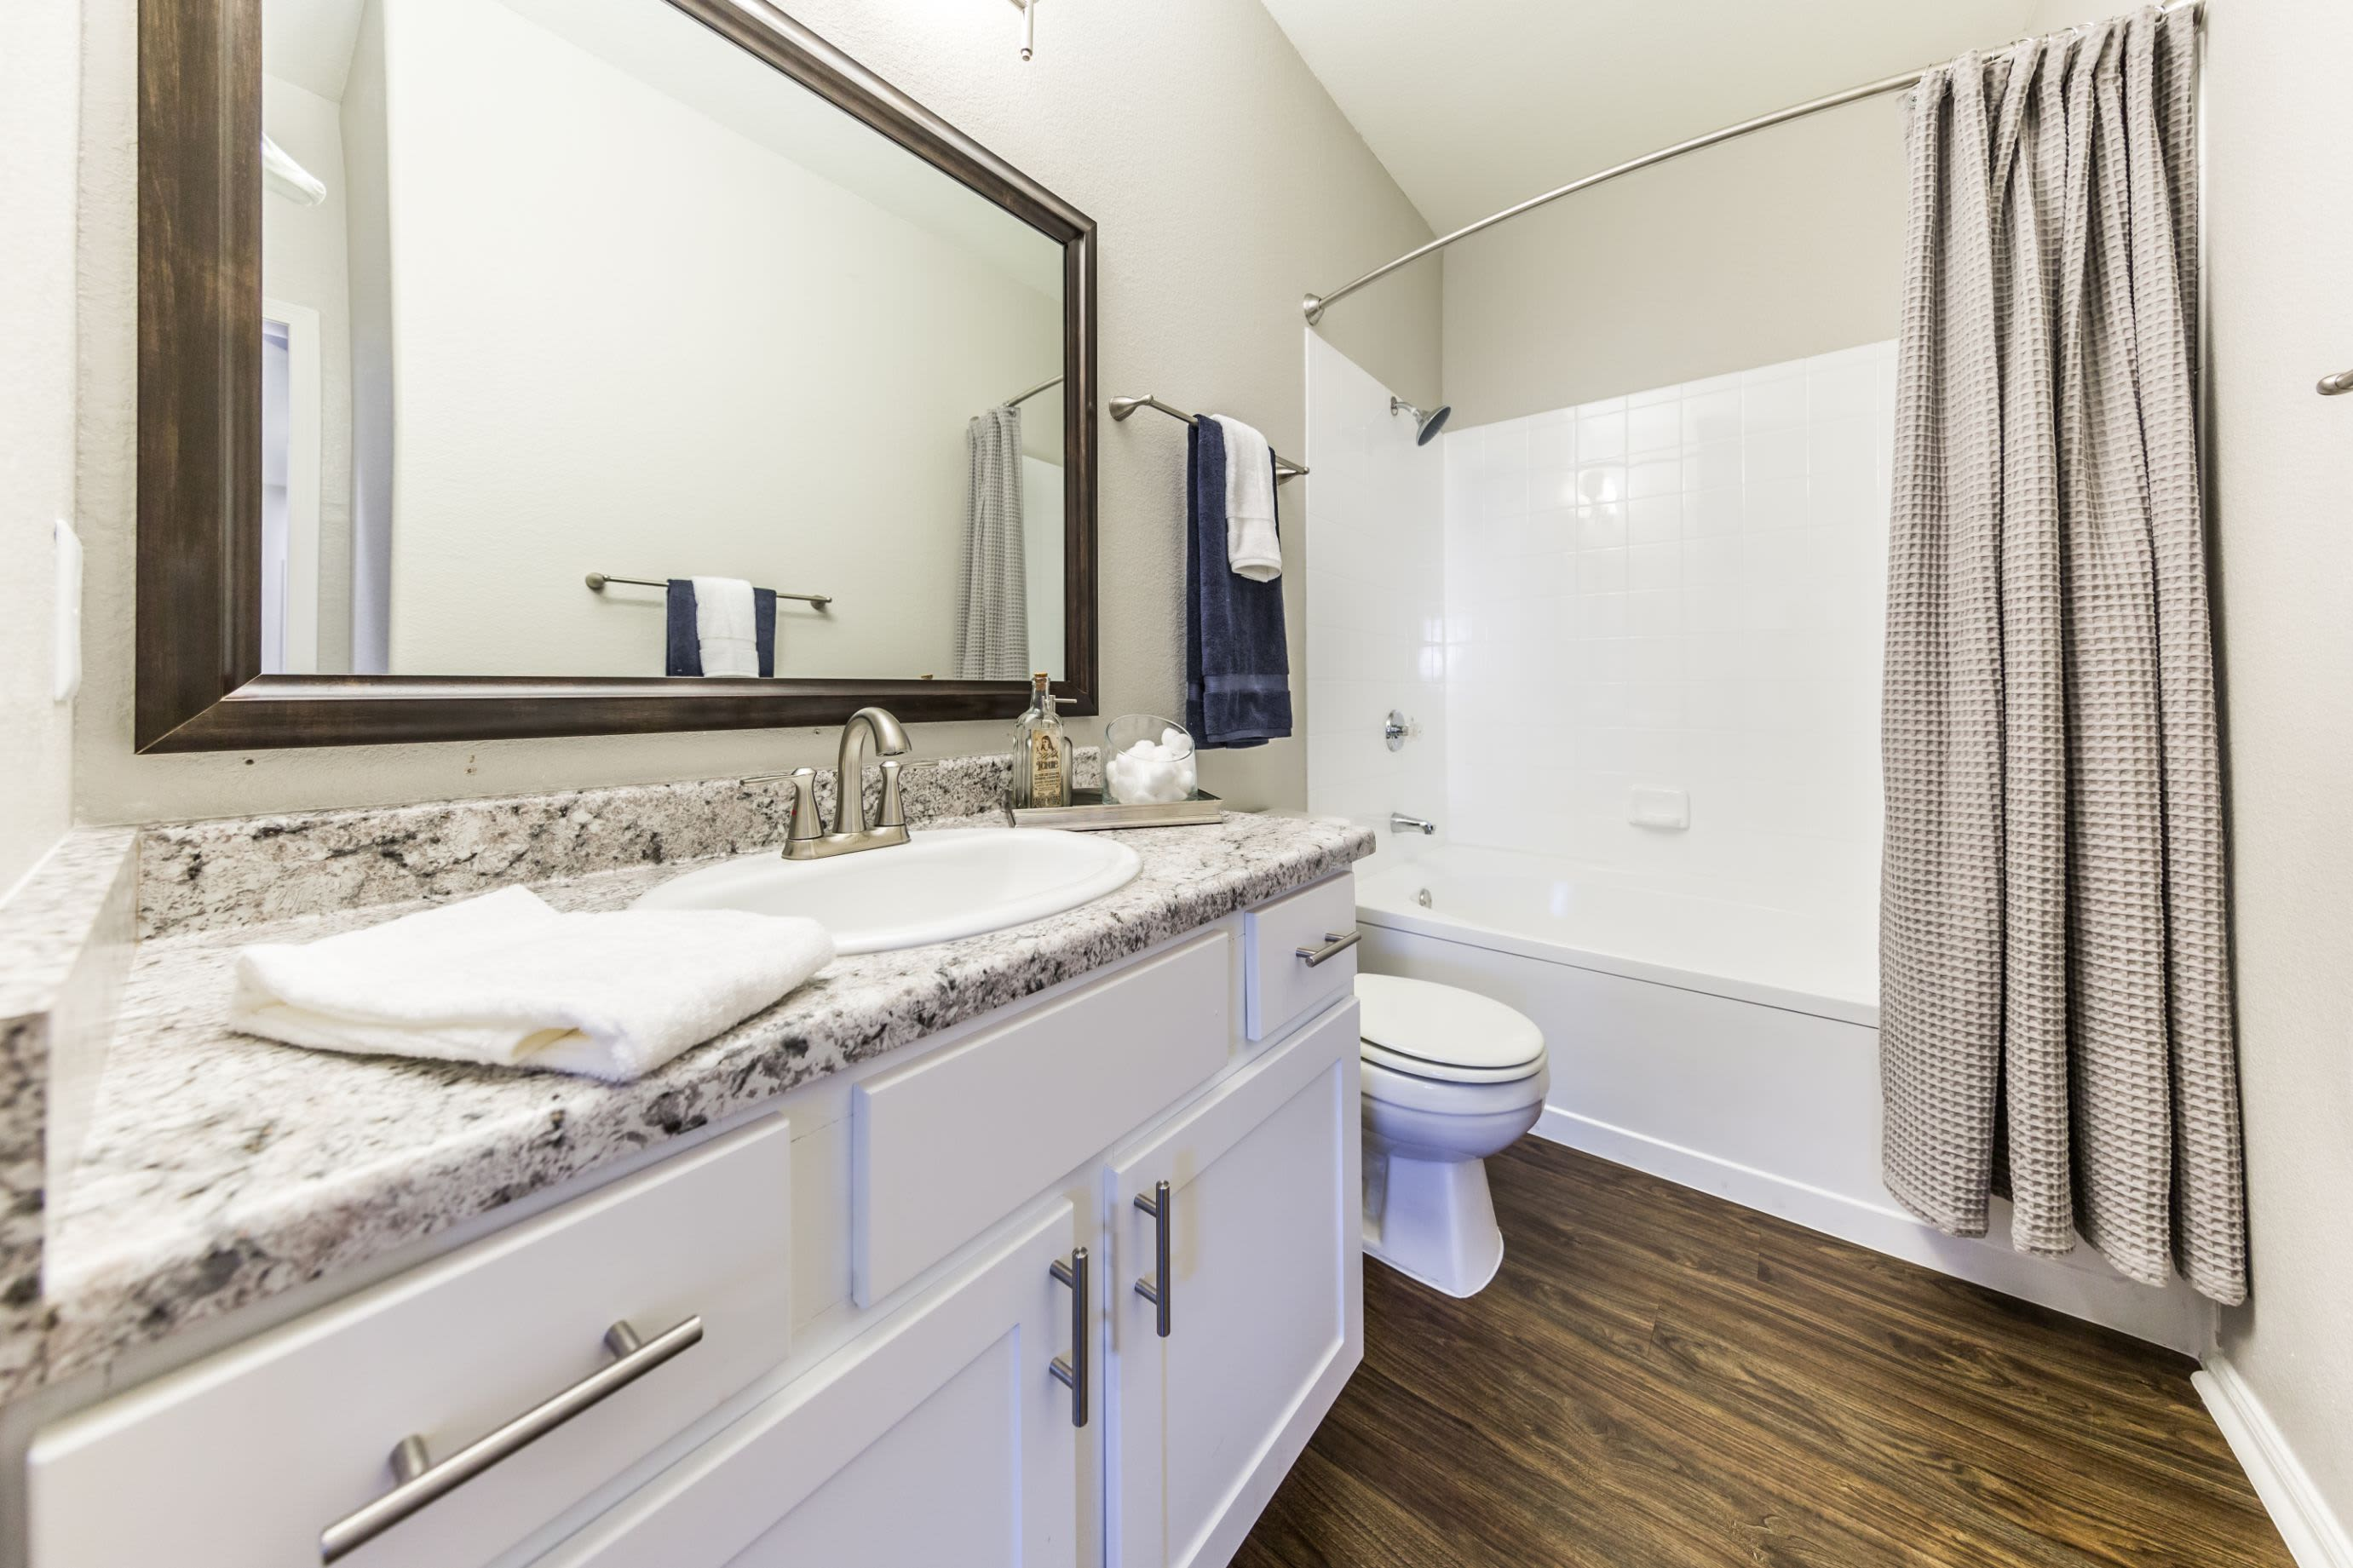 Bathroom with wood style floors at Marquis at Arrowhead in Peoria, Arizona